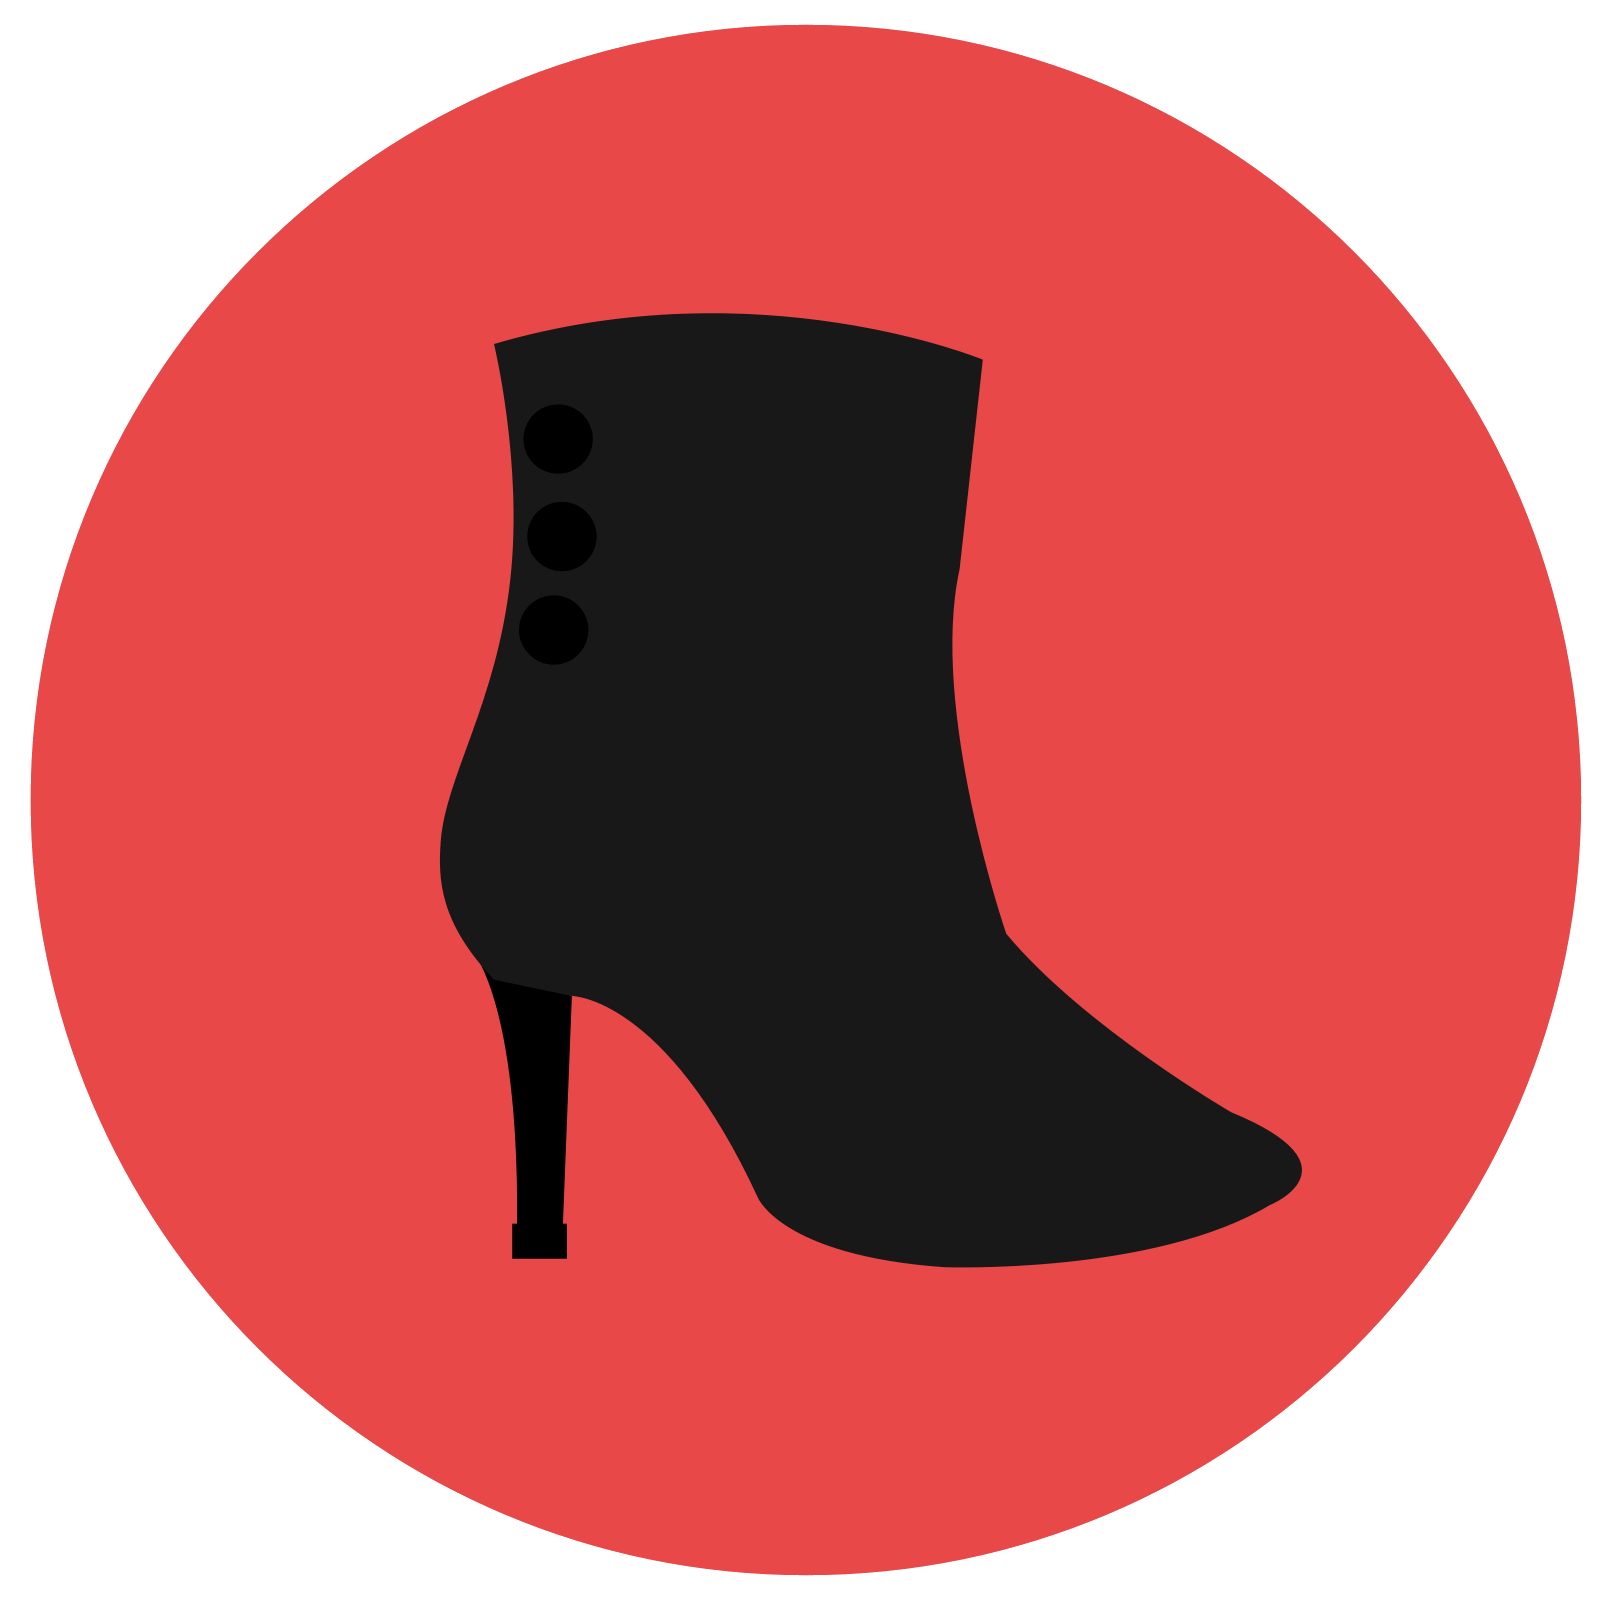 Heels clipart ankle, Heels ankle Transparent FREE for.